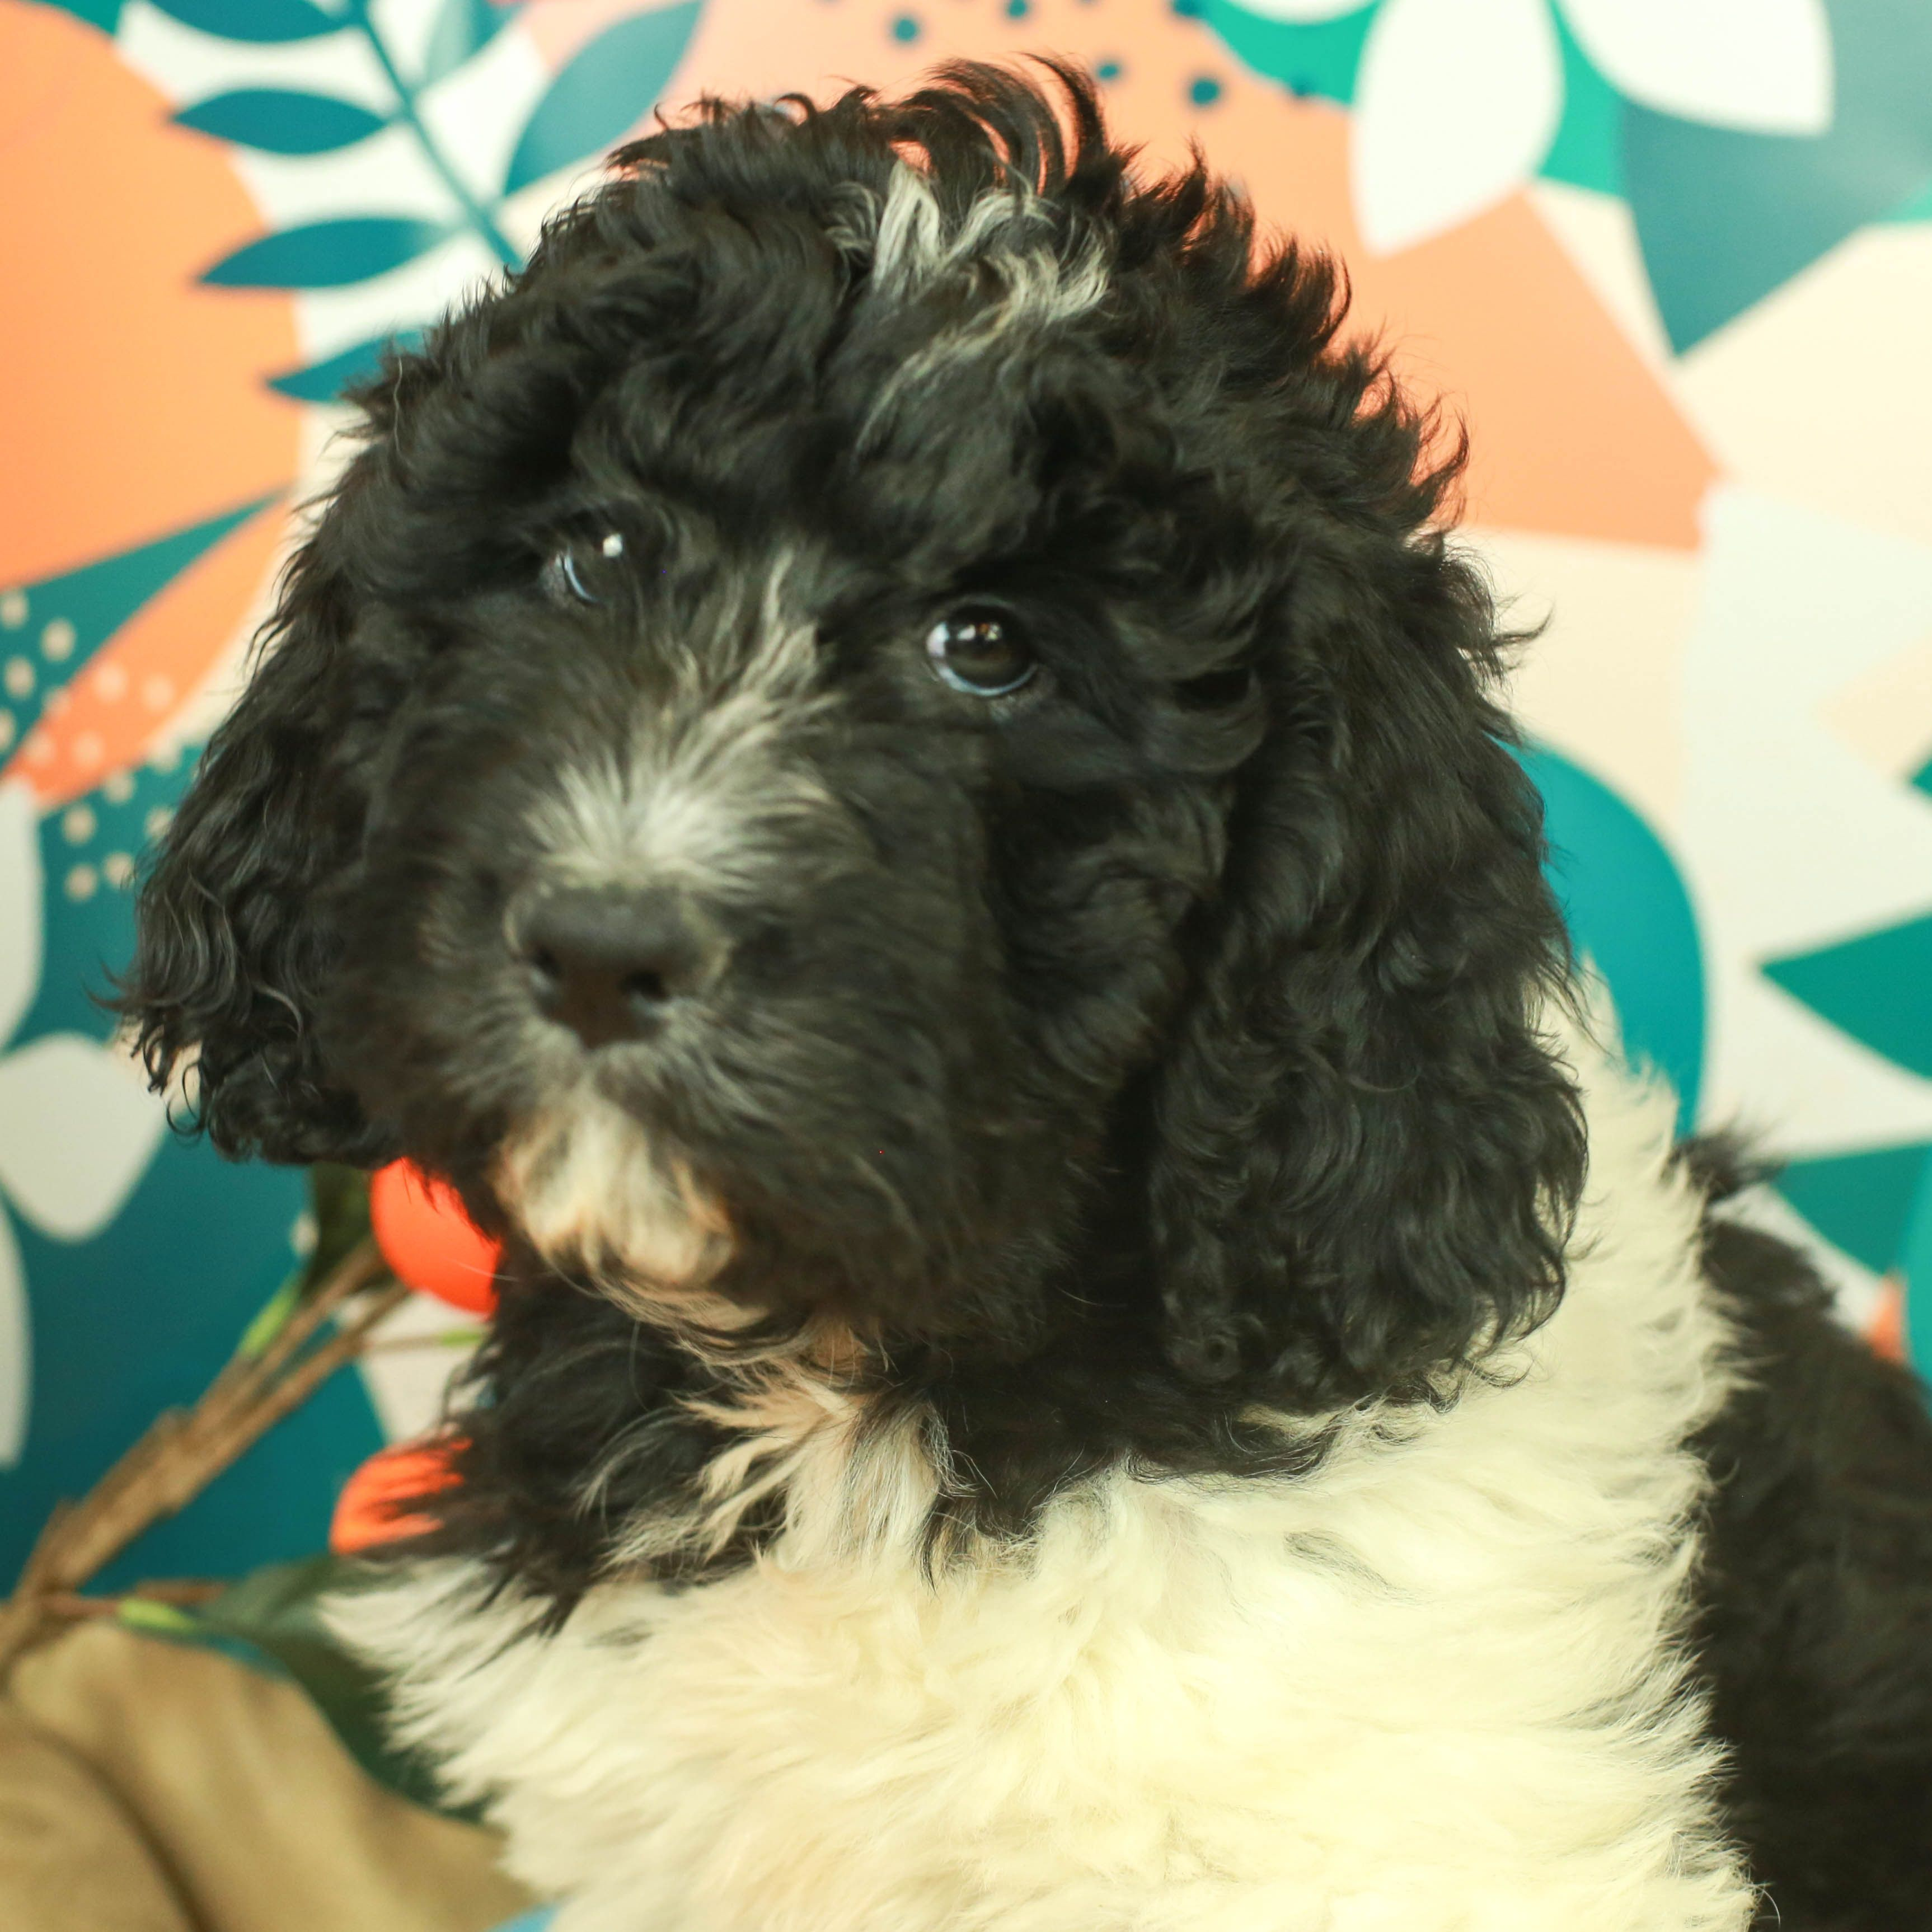 Available Puppies For Sale in 2020 (With images) Cute